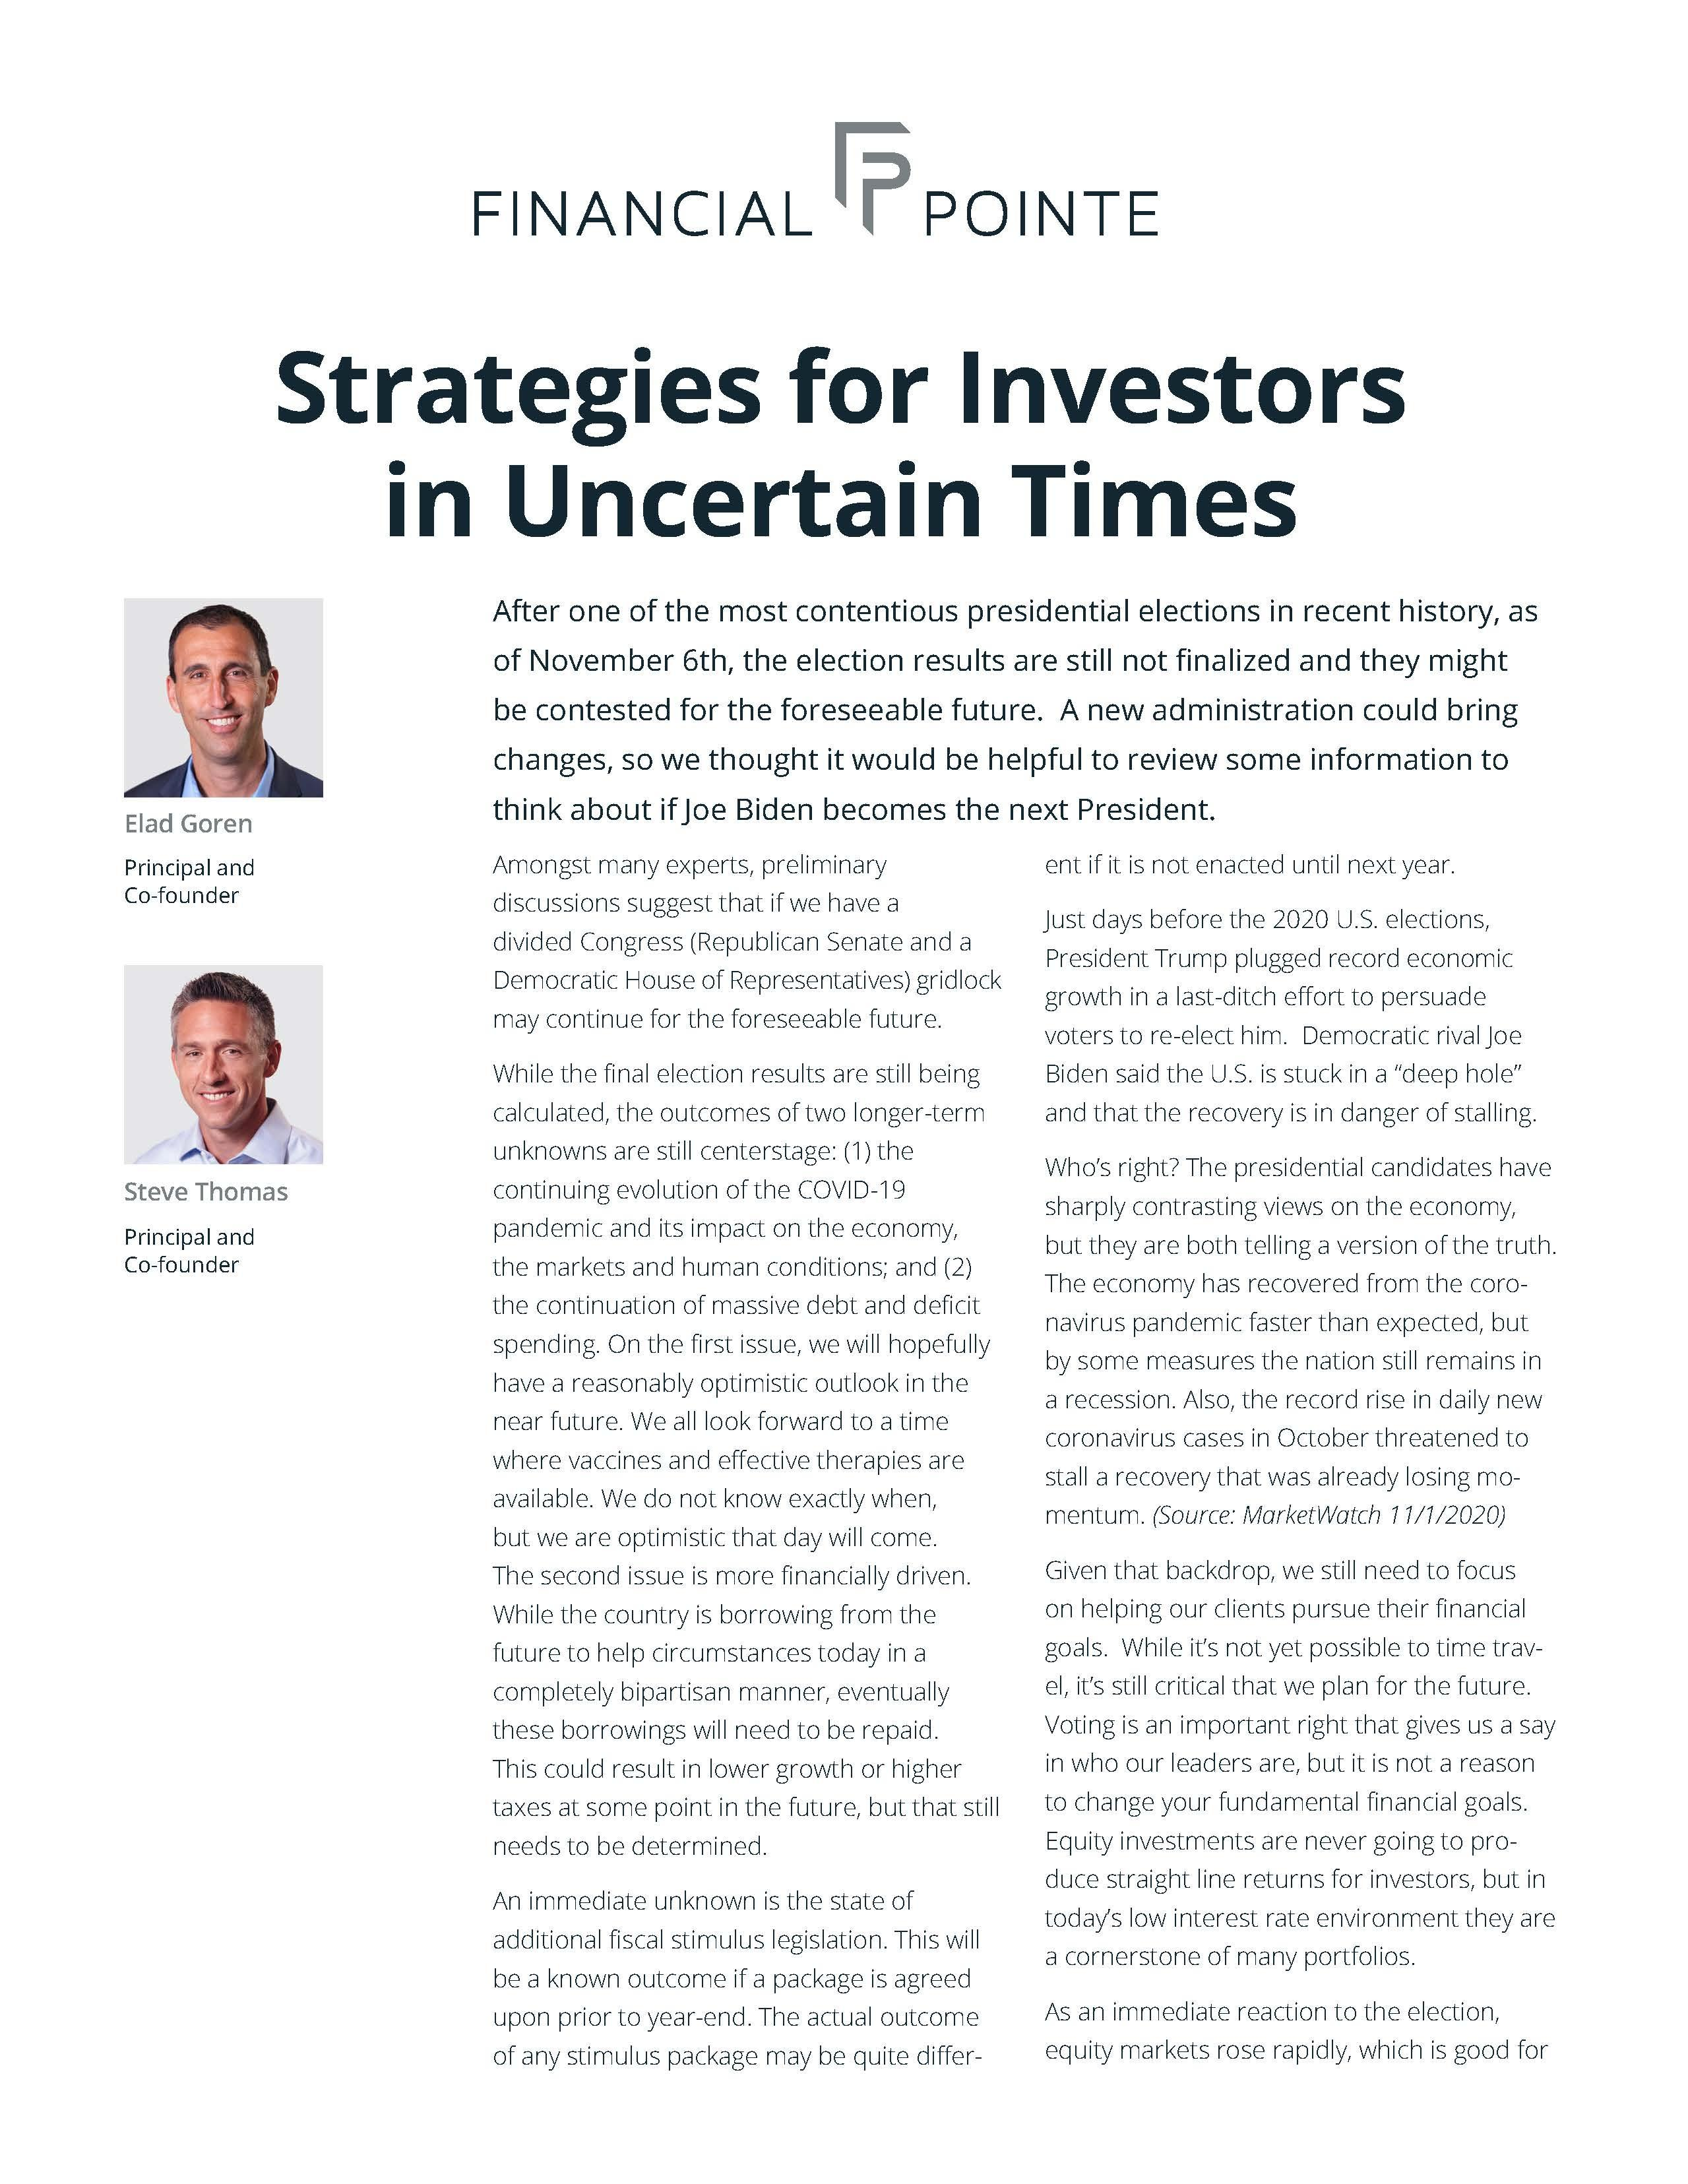 Strategies for Investors in Uncertain Times Thumbnail